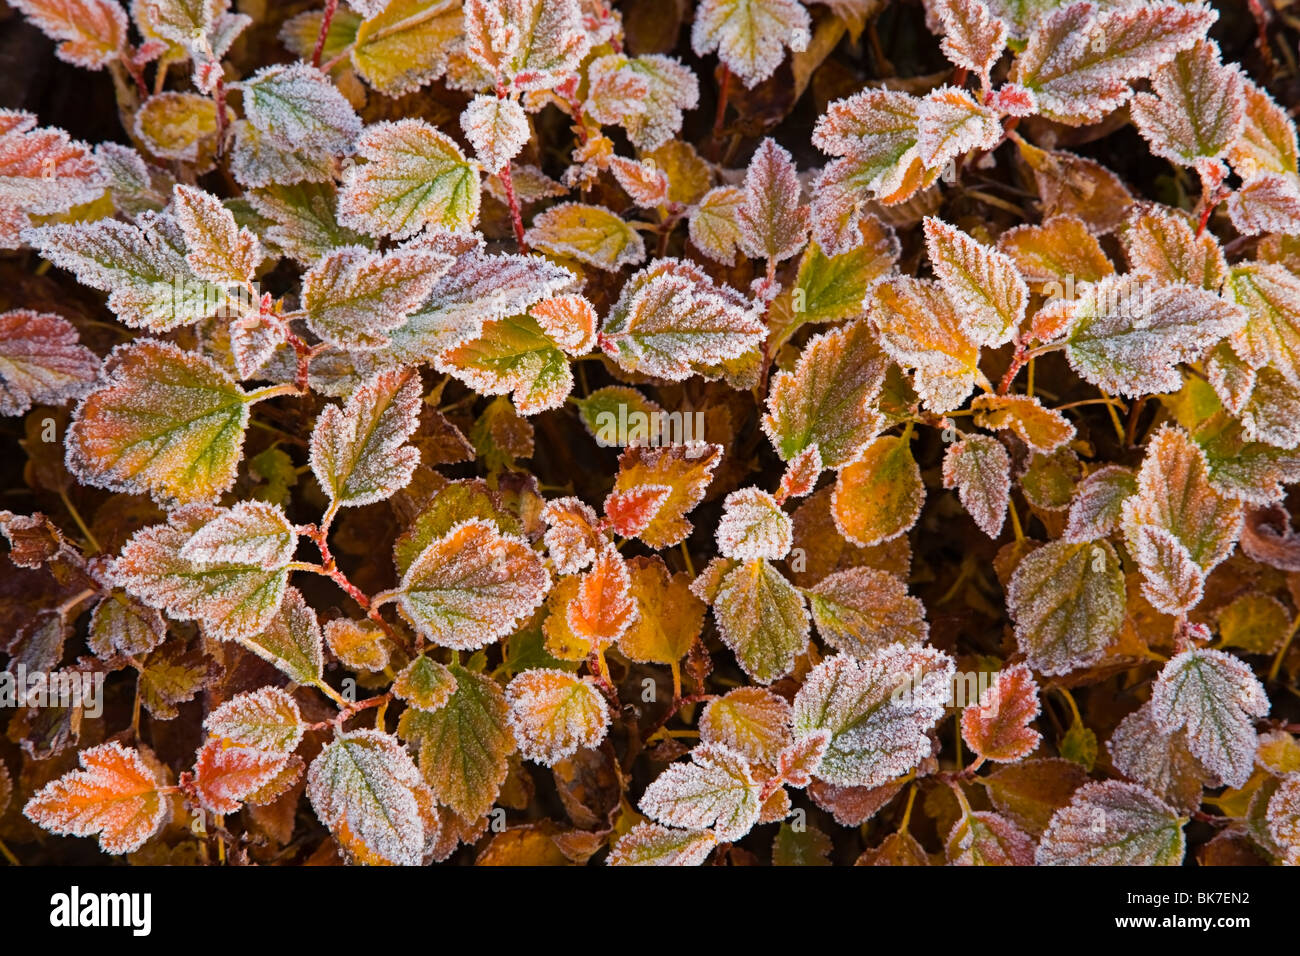 Frost on leaves of plant - Stock Image